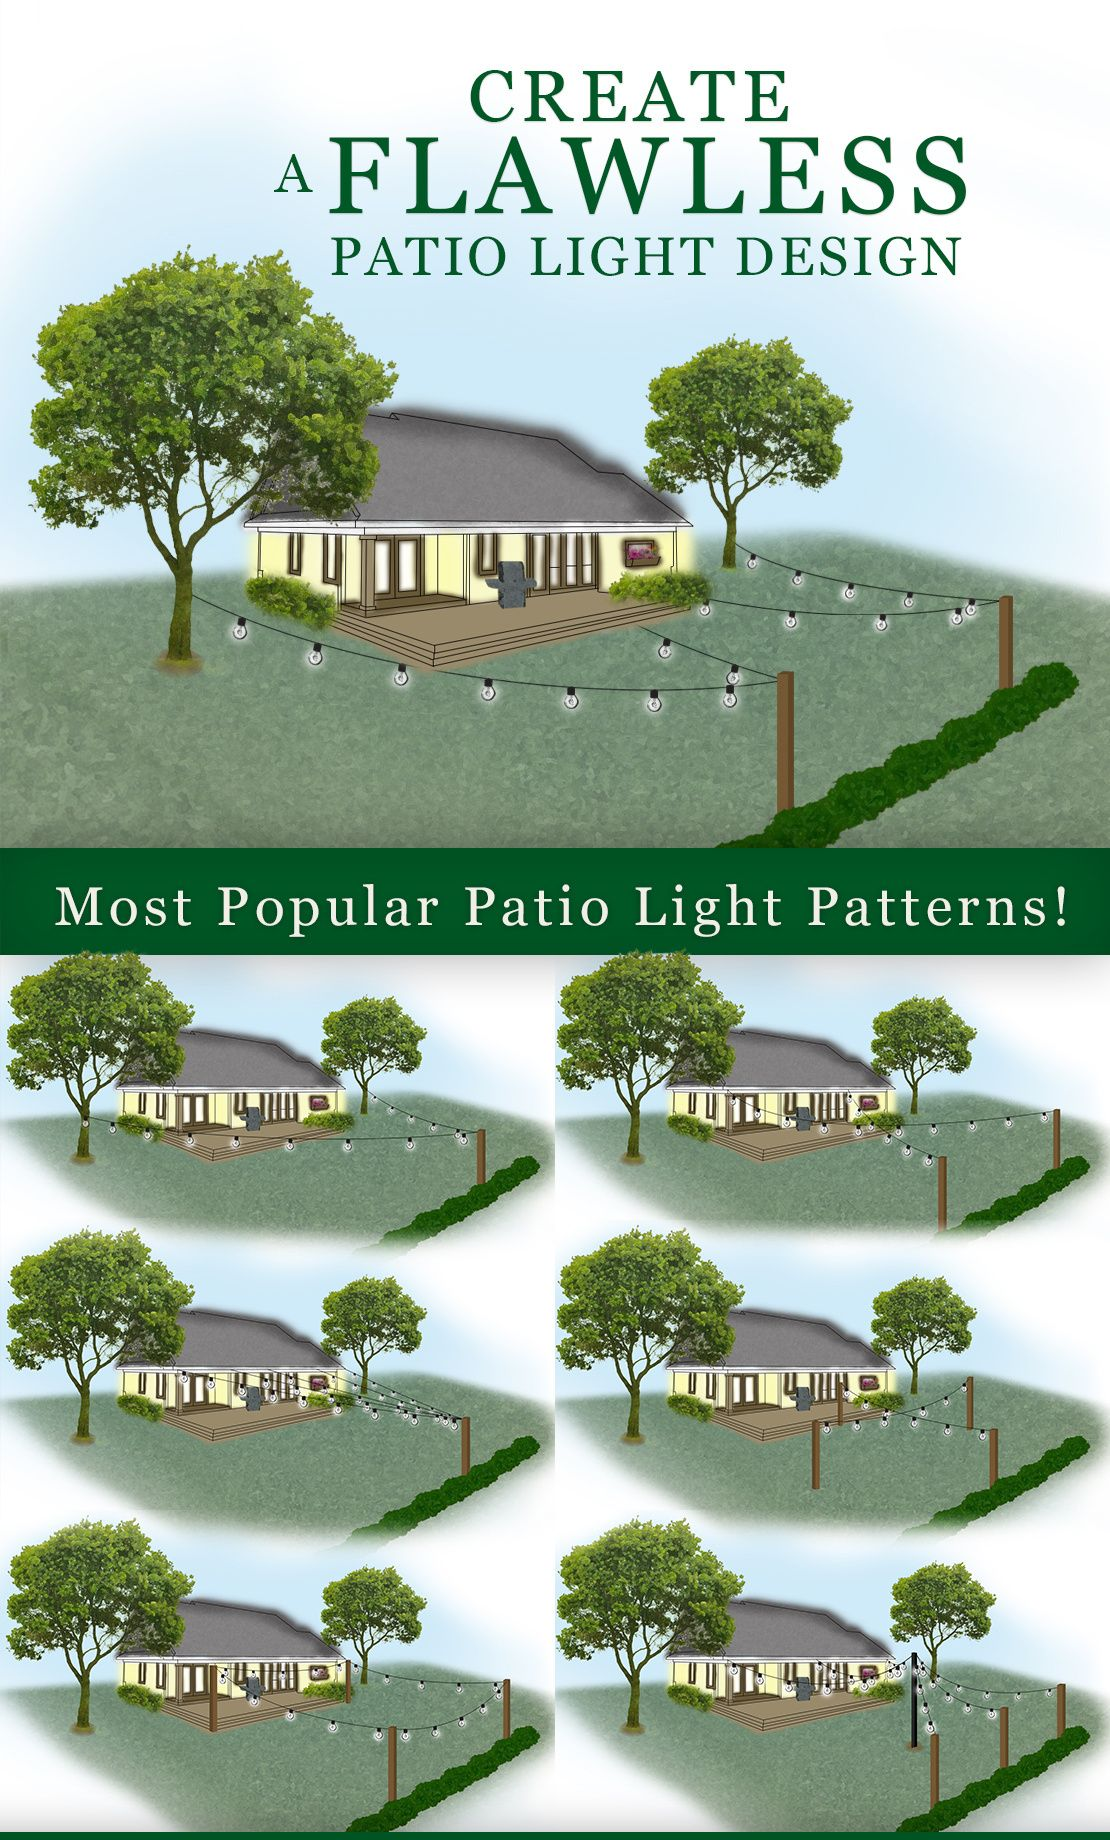 ideas for hanging string lights outdoors on how to hang patio lights christmas lights etc hanging patio lights backyard patio lighting how to hang patio lights christmas